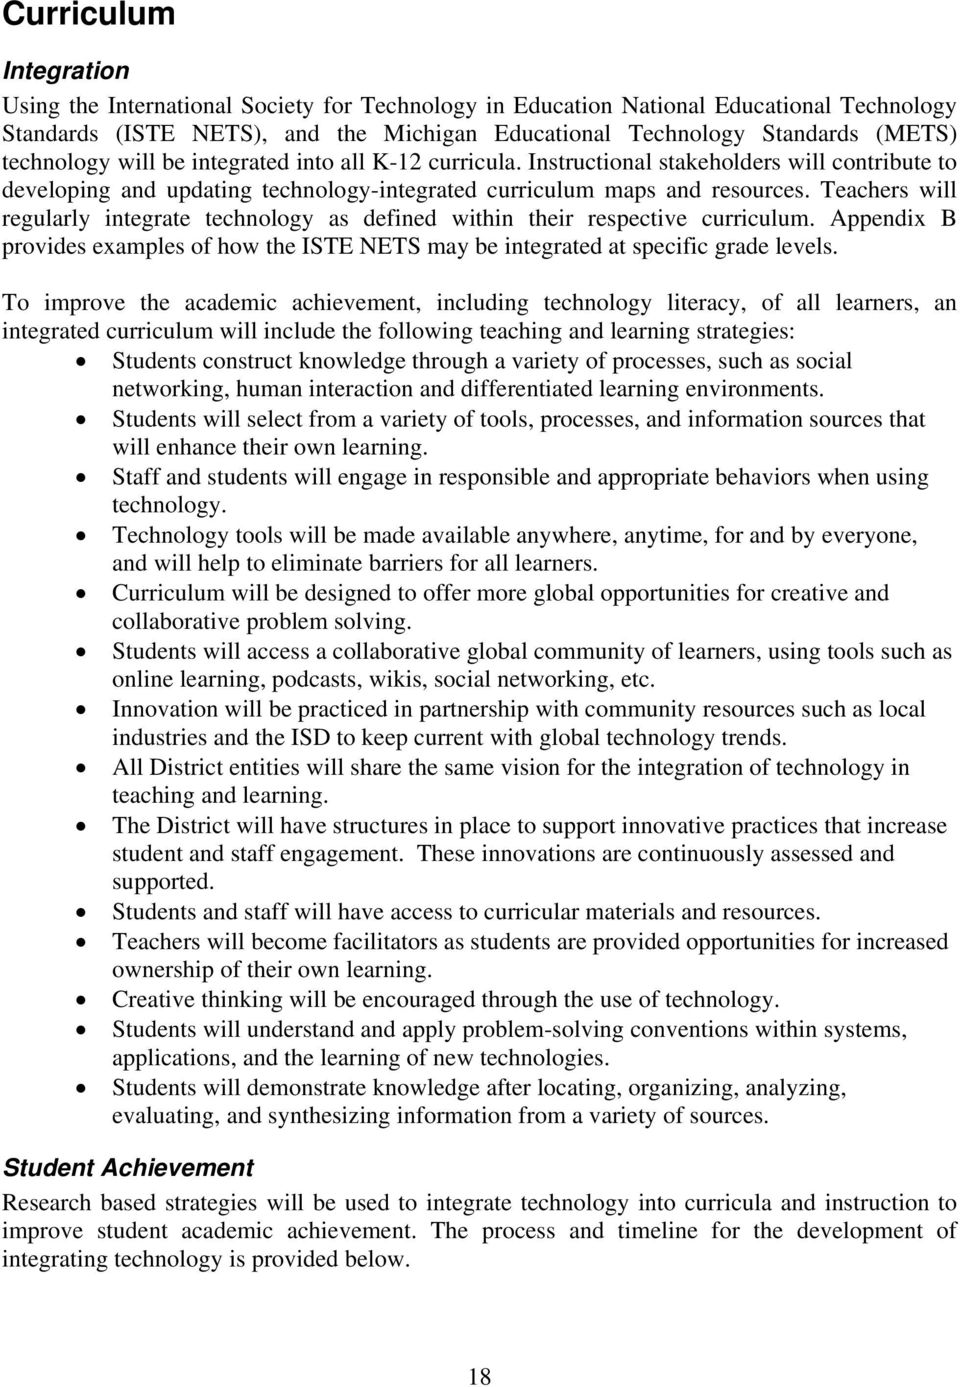 Teachers will regularly integrate technology as defined within their respective curriculum. Appendix B provides examples of how the ISTE NETS may be integrated at specific grade levels.